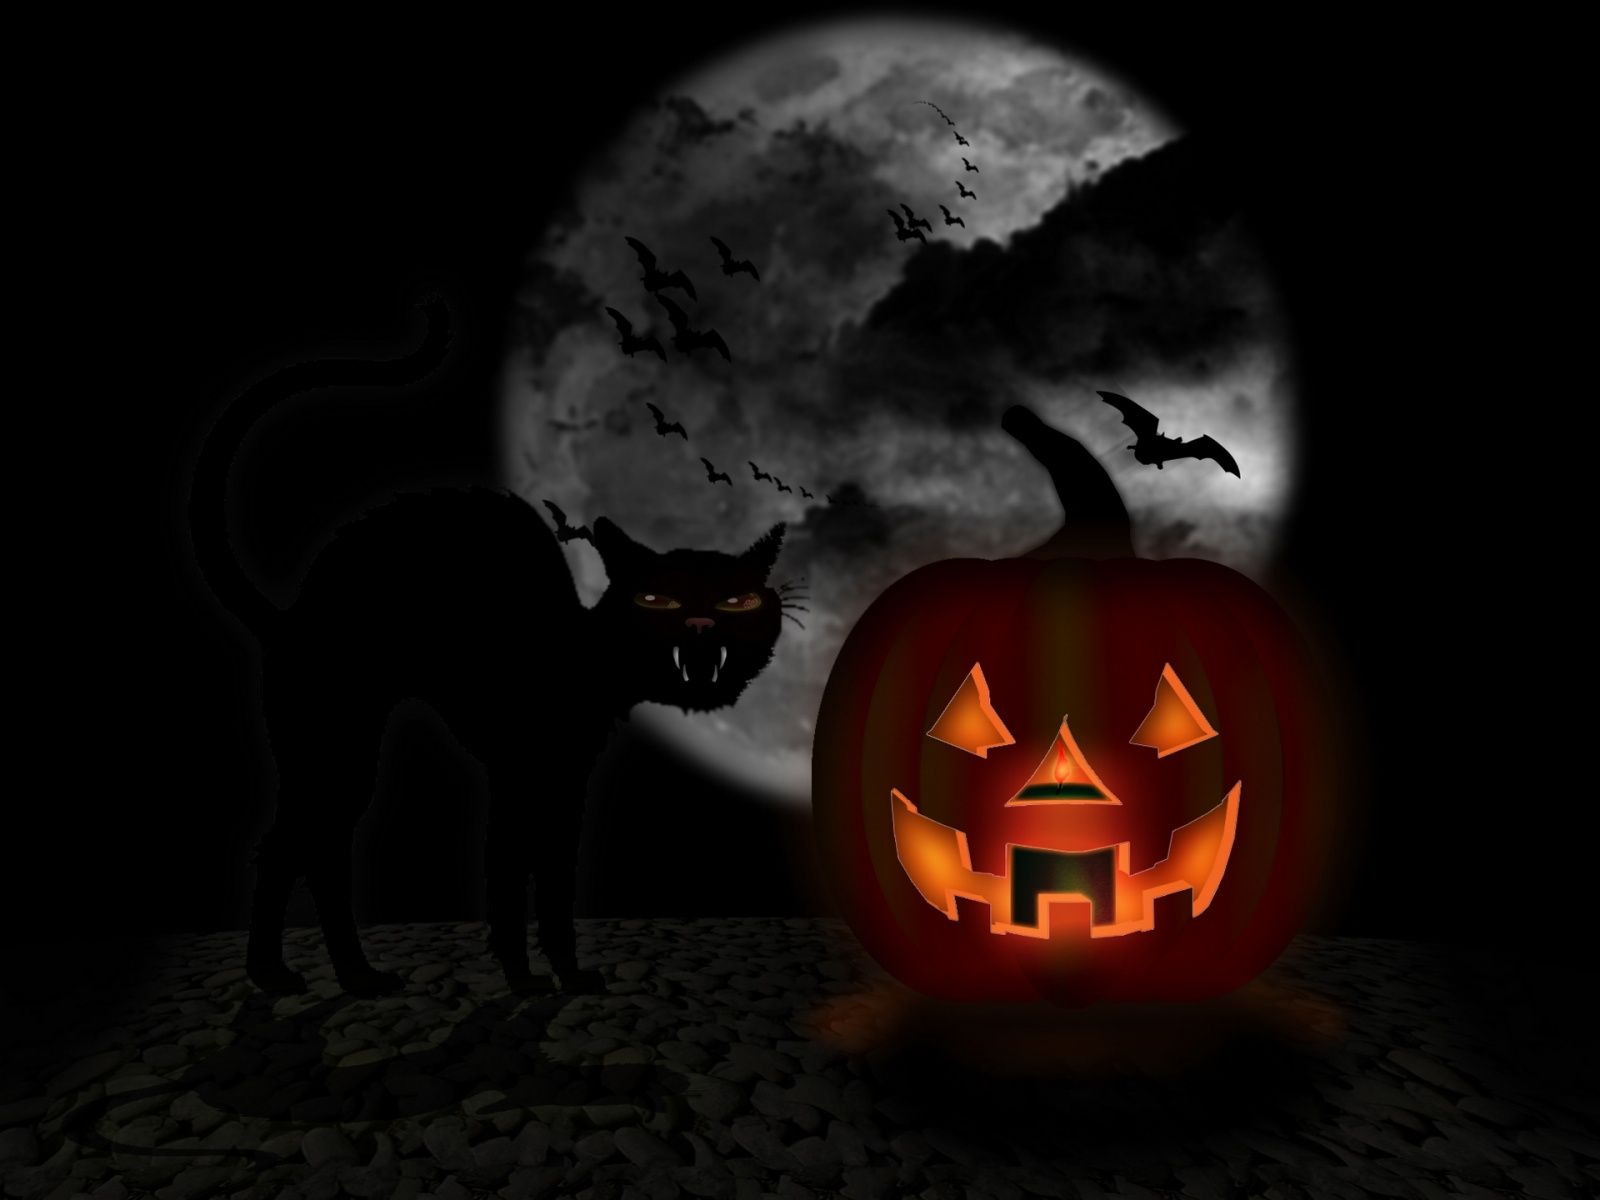 Scary Halloween Wallpapers wallpaper wallpaper hd 1600x1200